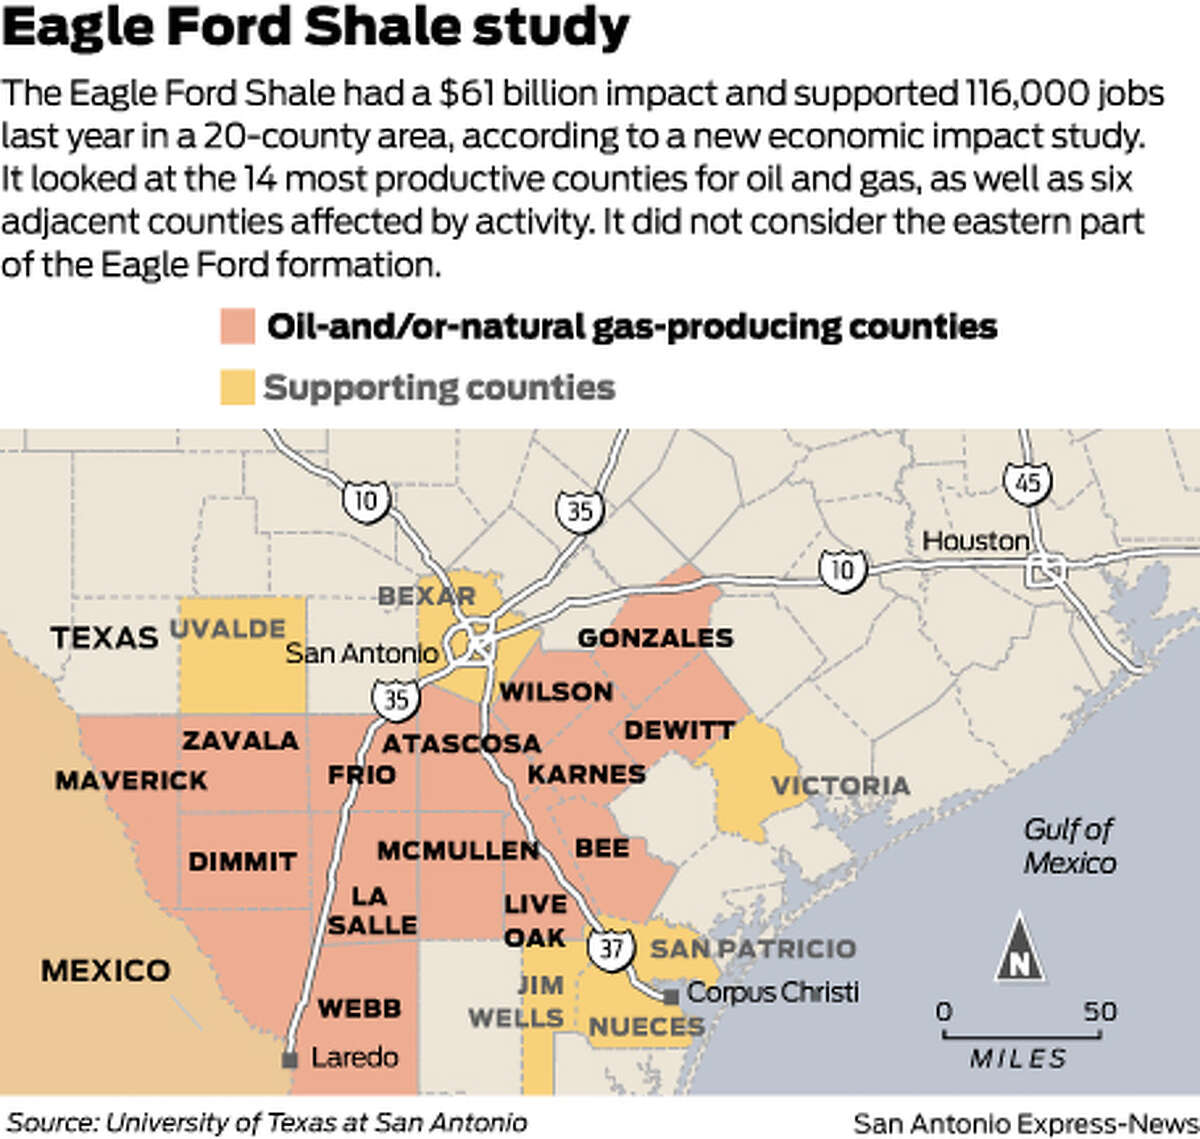 The Eagle Ford Shale had a $61 billion impact and supported 116,000 jobs last year in a 20-county area, according to a new economic impact study. It looked at the 14 most productive counties for oil and gas, as well as six adjacent counties affected by activity. It did not consider the eastern part of the Eagle Ford formation.